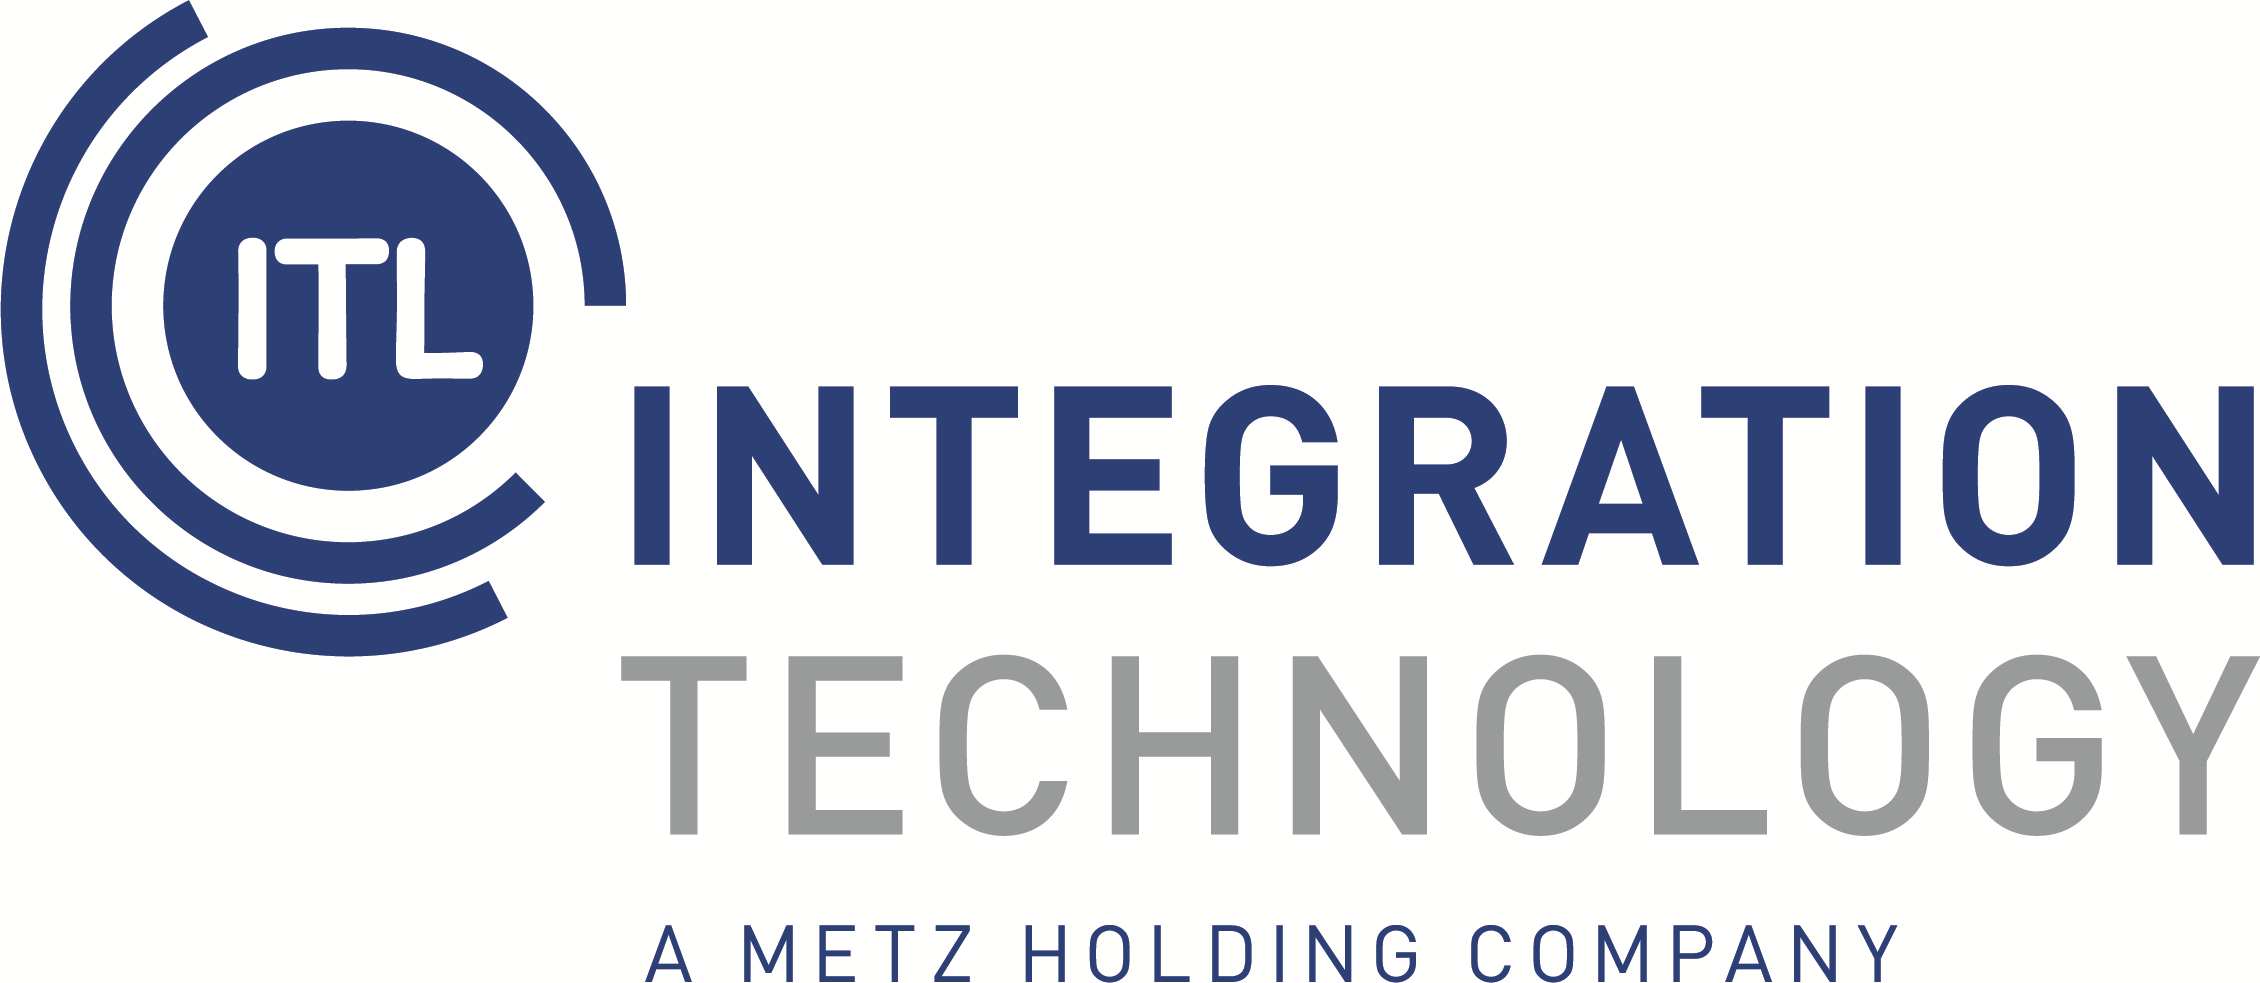 Integration Technology Ltd